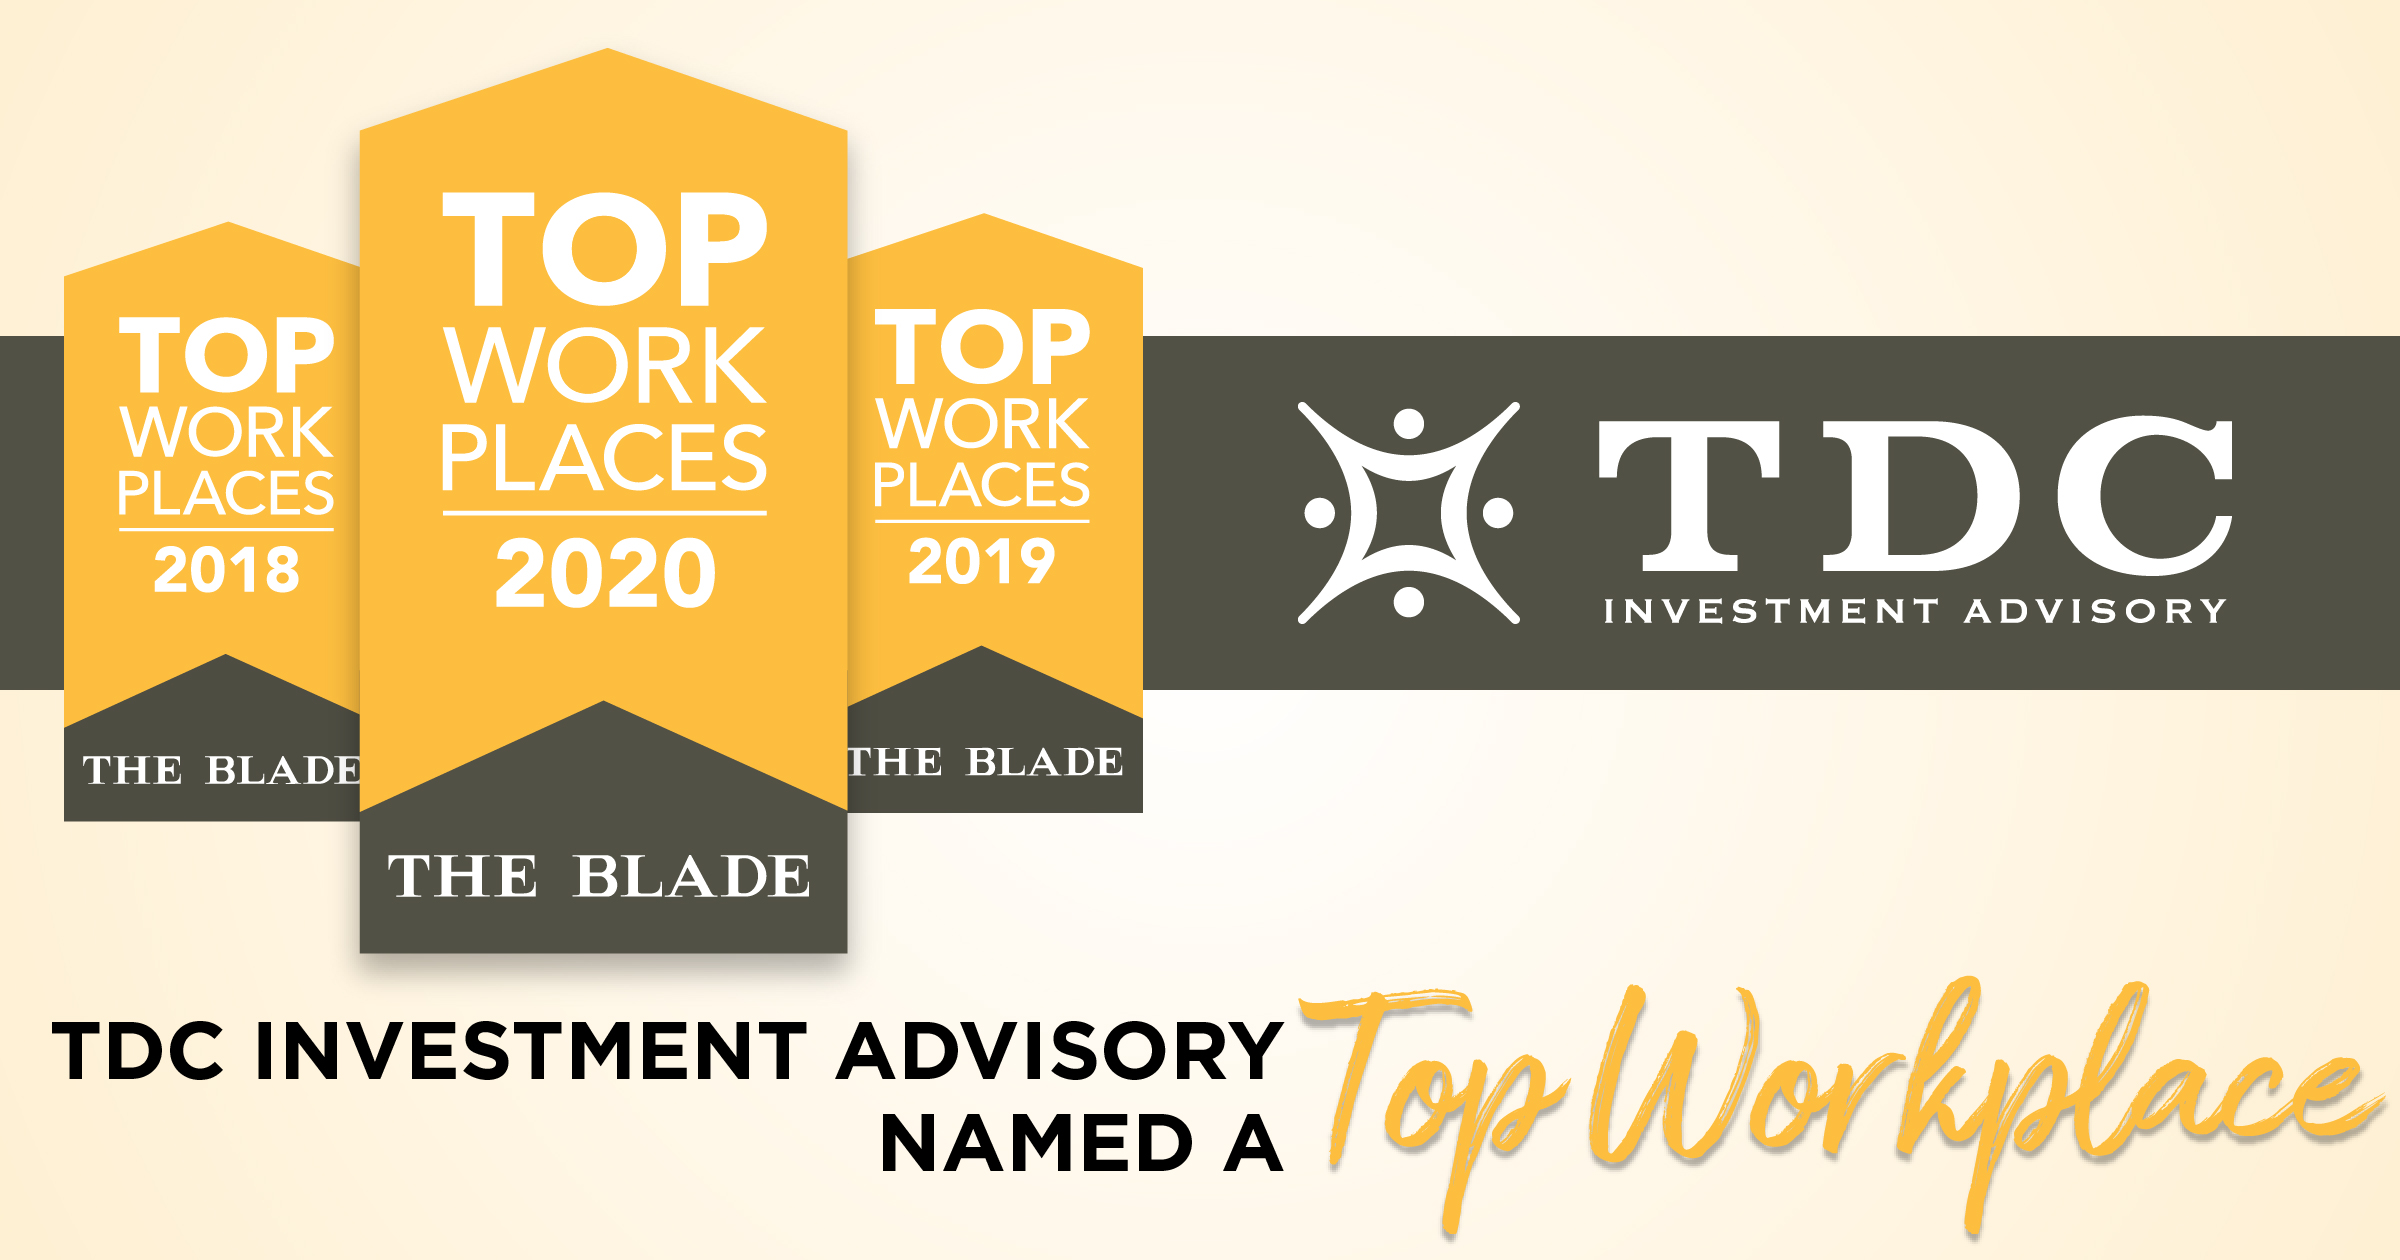 2020 Top Workplace Announcement